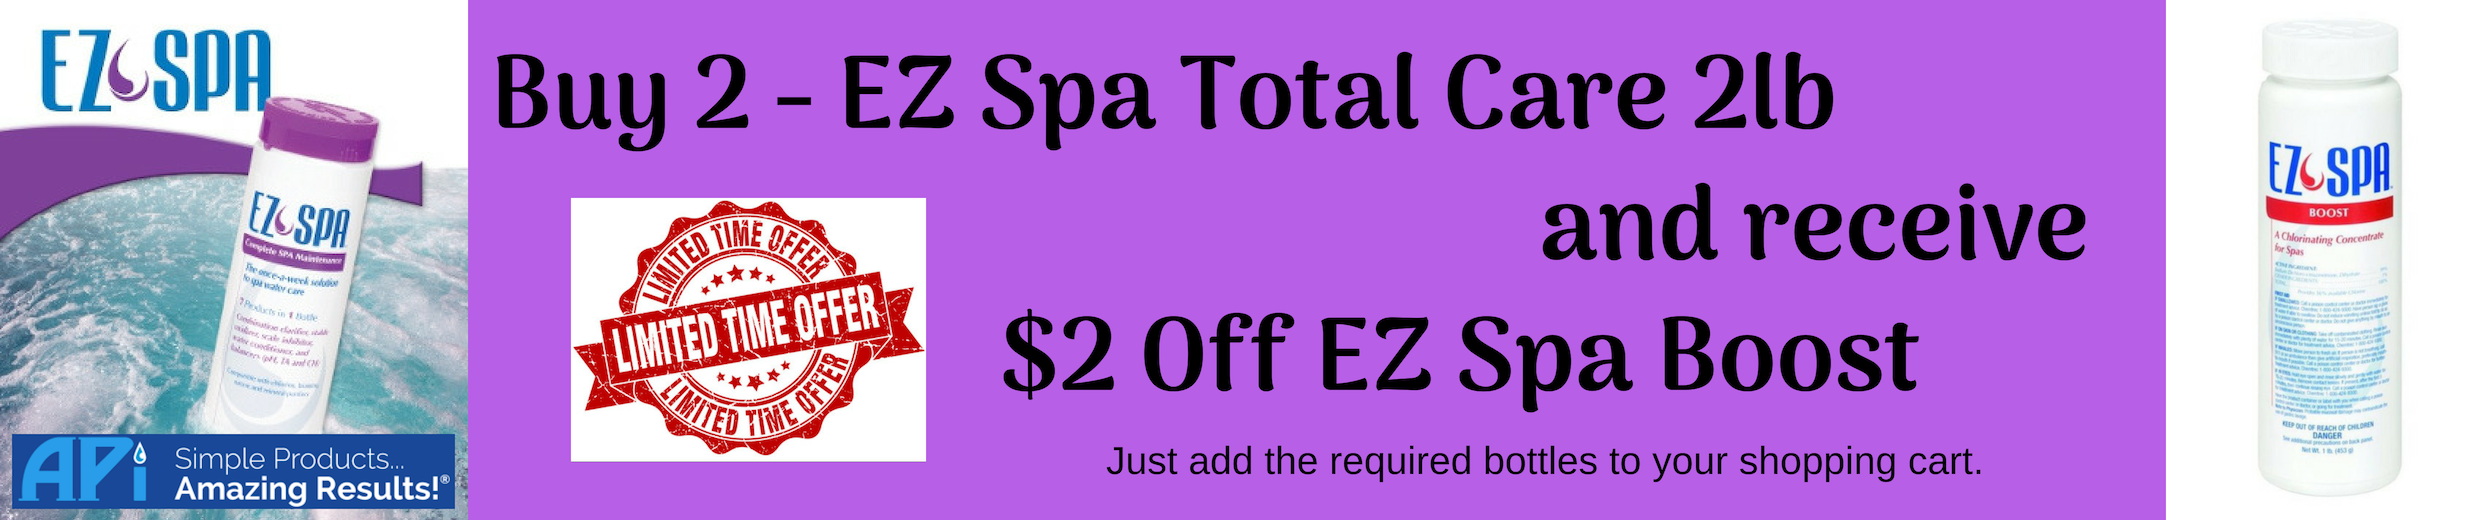 buy-2-ez-spa-total-care-2lb.png